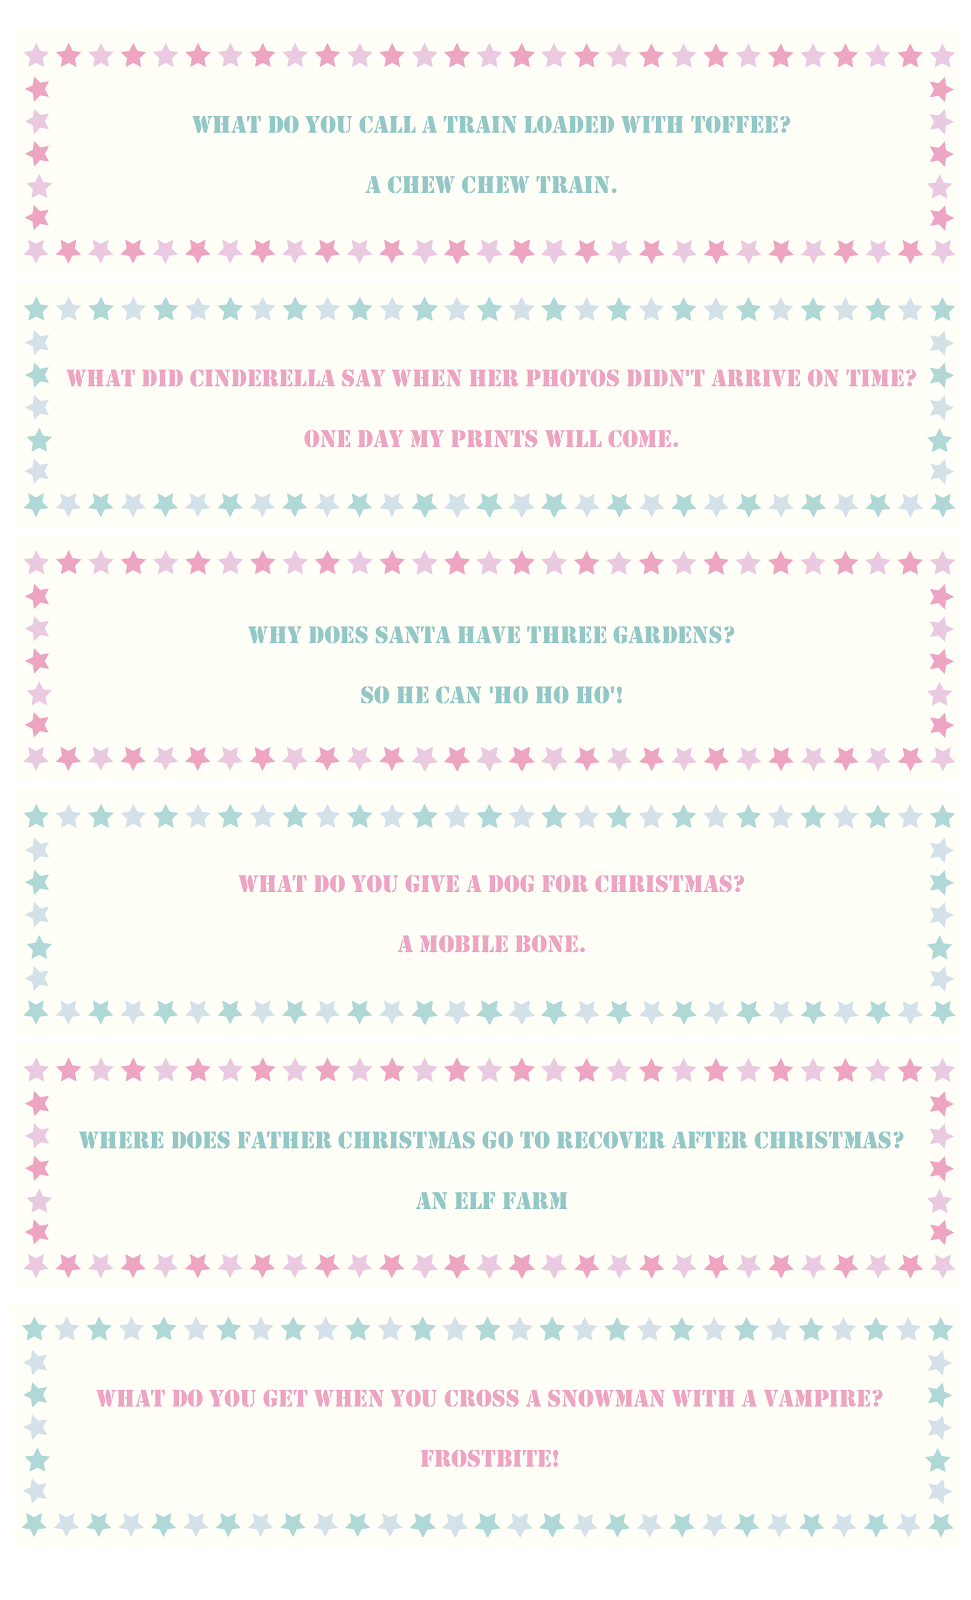 Christmas Cracker Jokes.Christmas Cracker Jokes By Torie Jayne Gift Ideas Diy